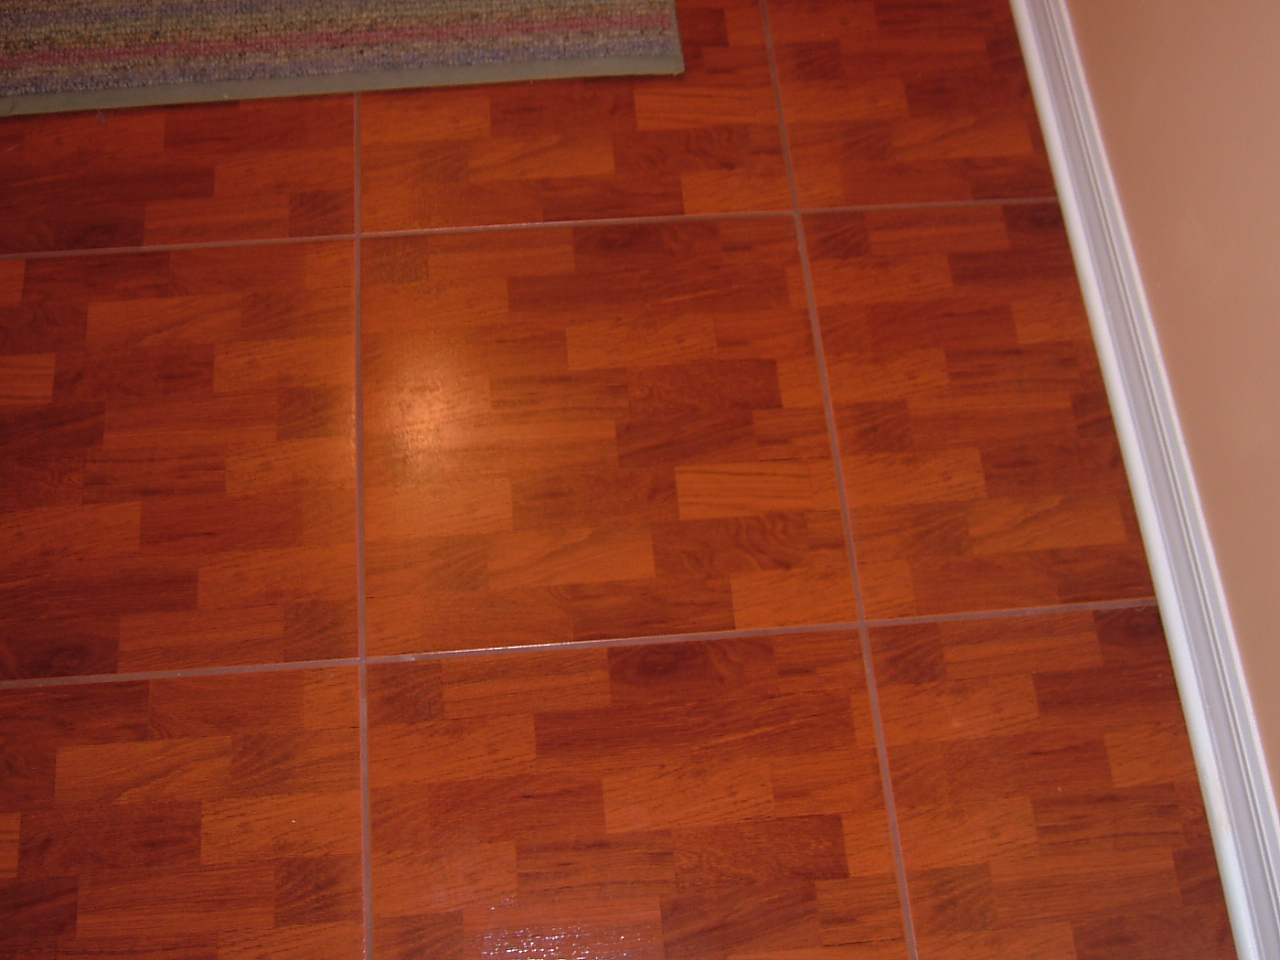 Hardwood Floor Or Laminate Installation Recs Please Dscf0259 Jpg